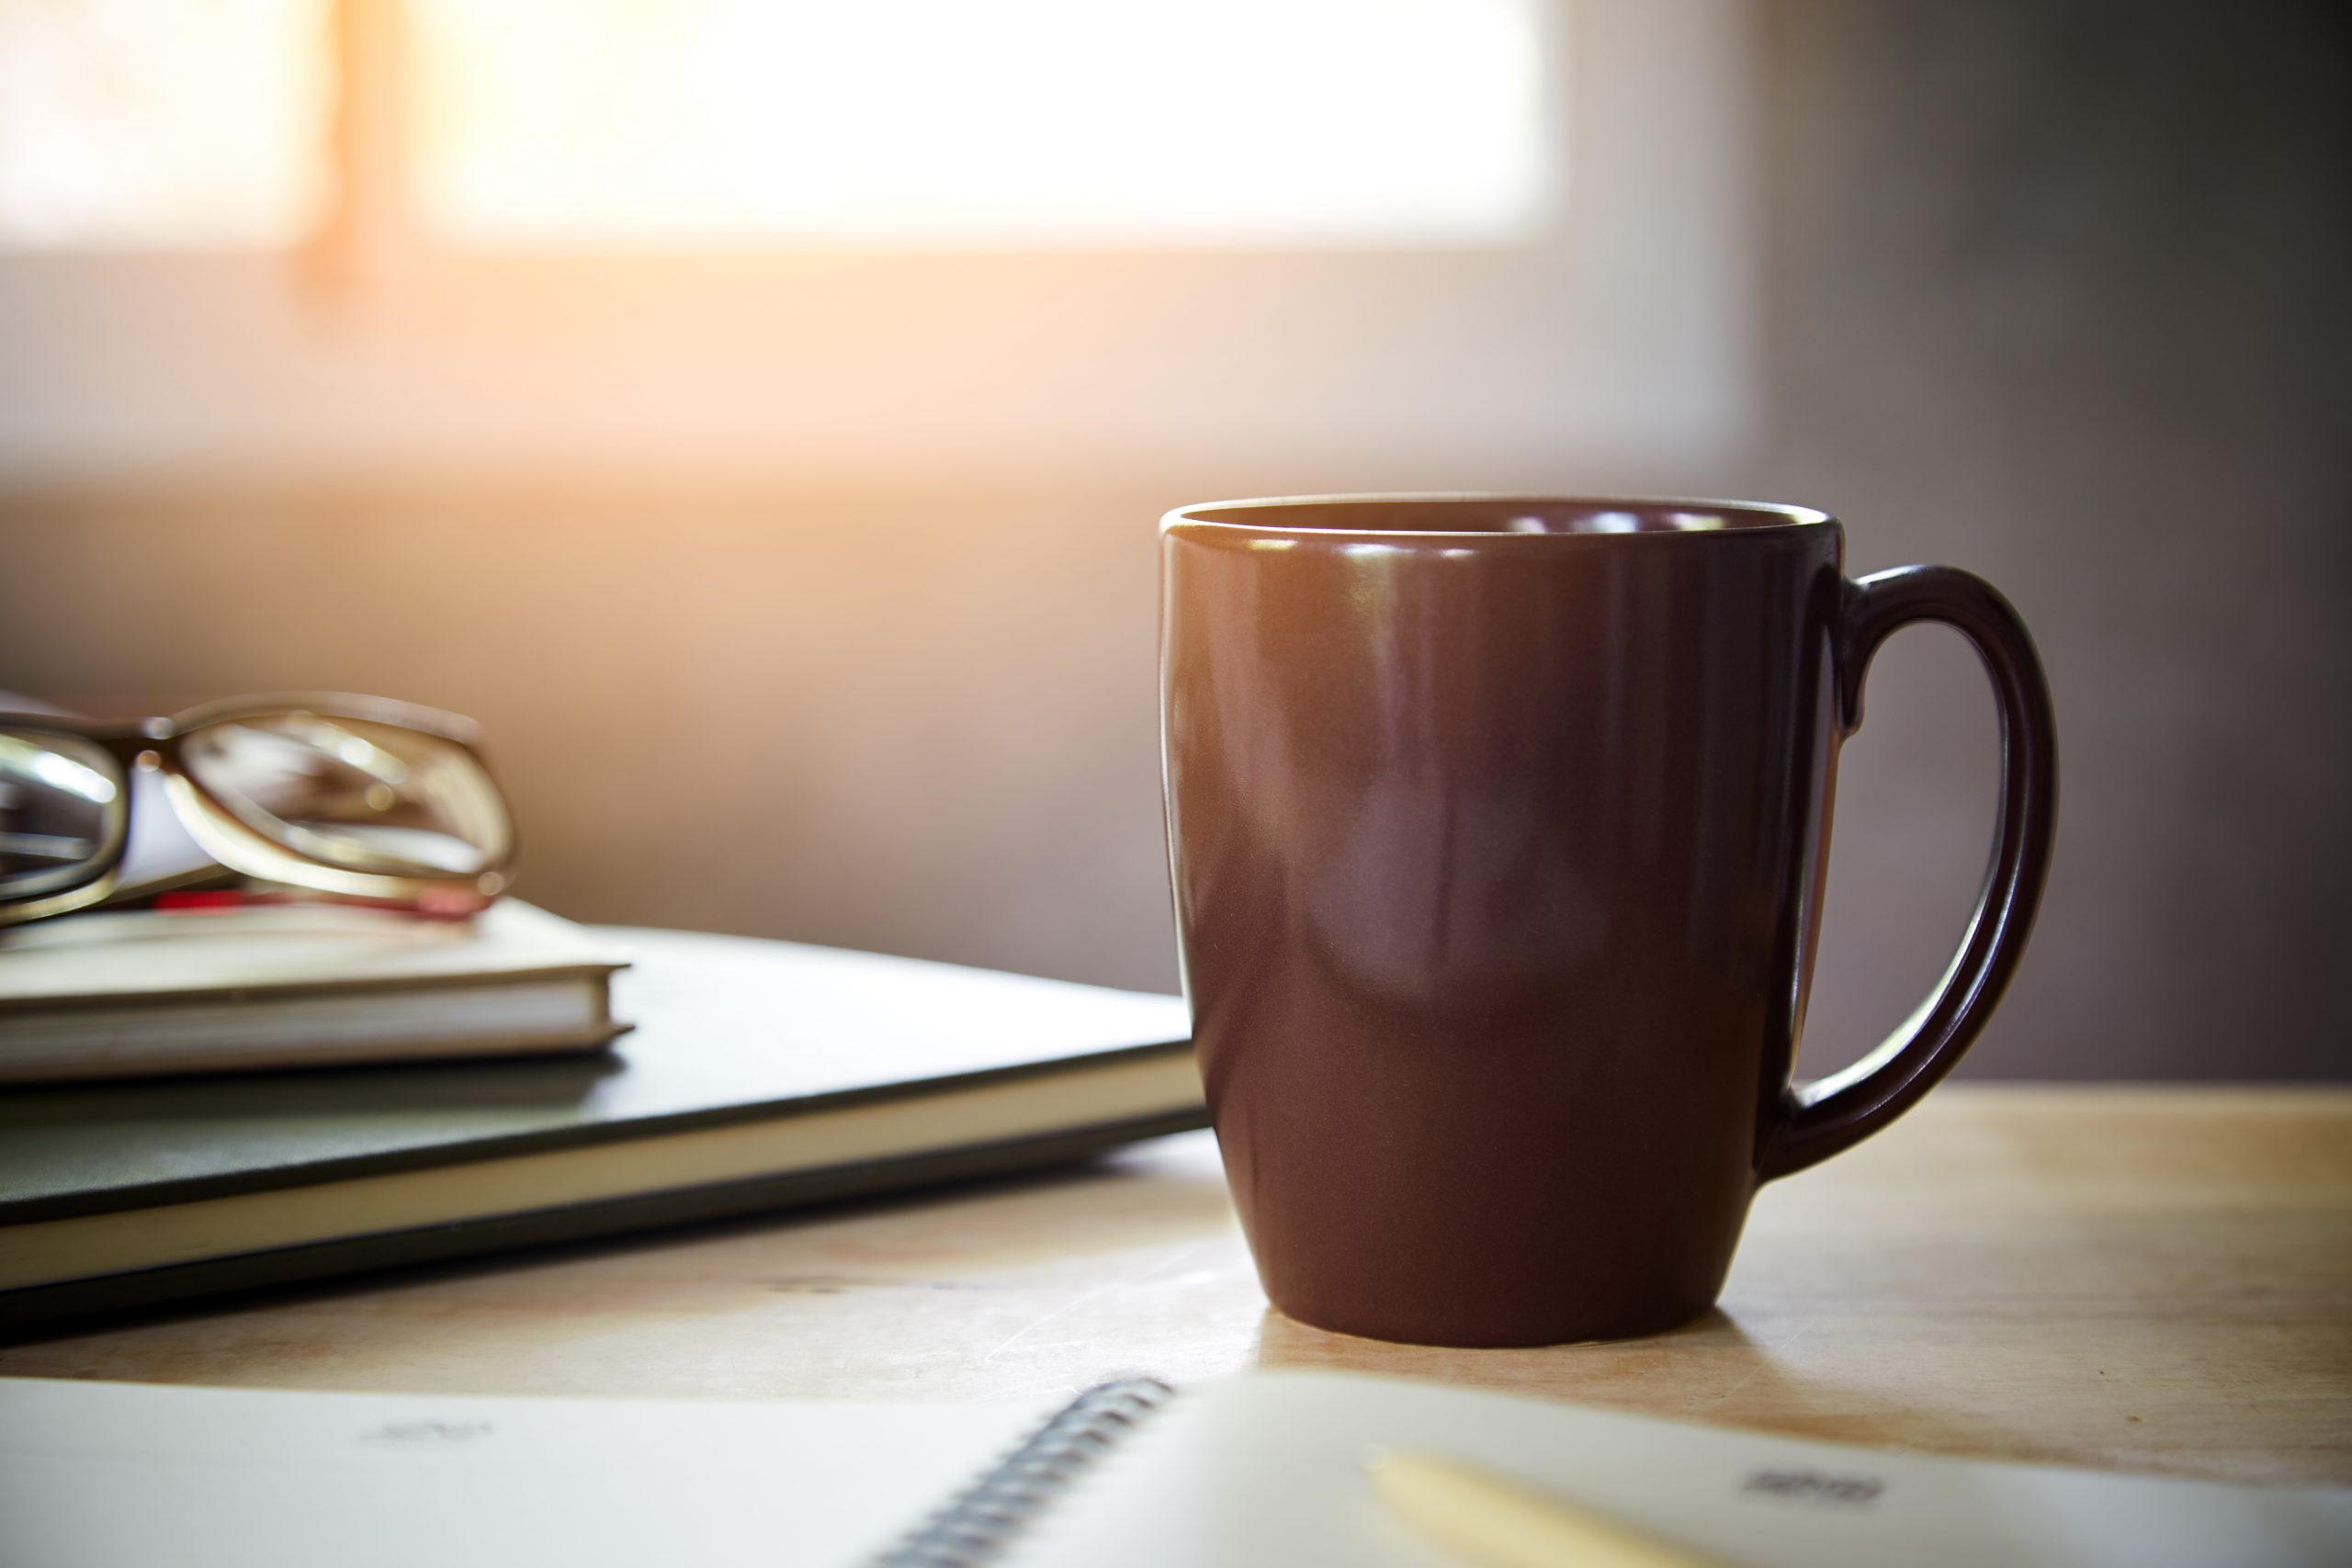 Morning coffee on the desk with sunlight from window,  Coffee mug on the table with the blurred of notebook and glasses